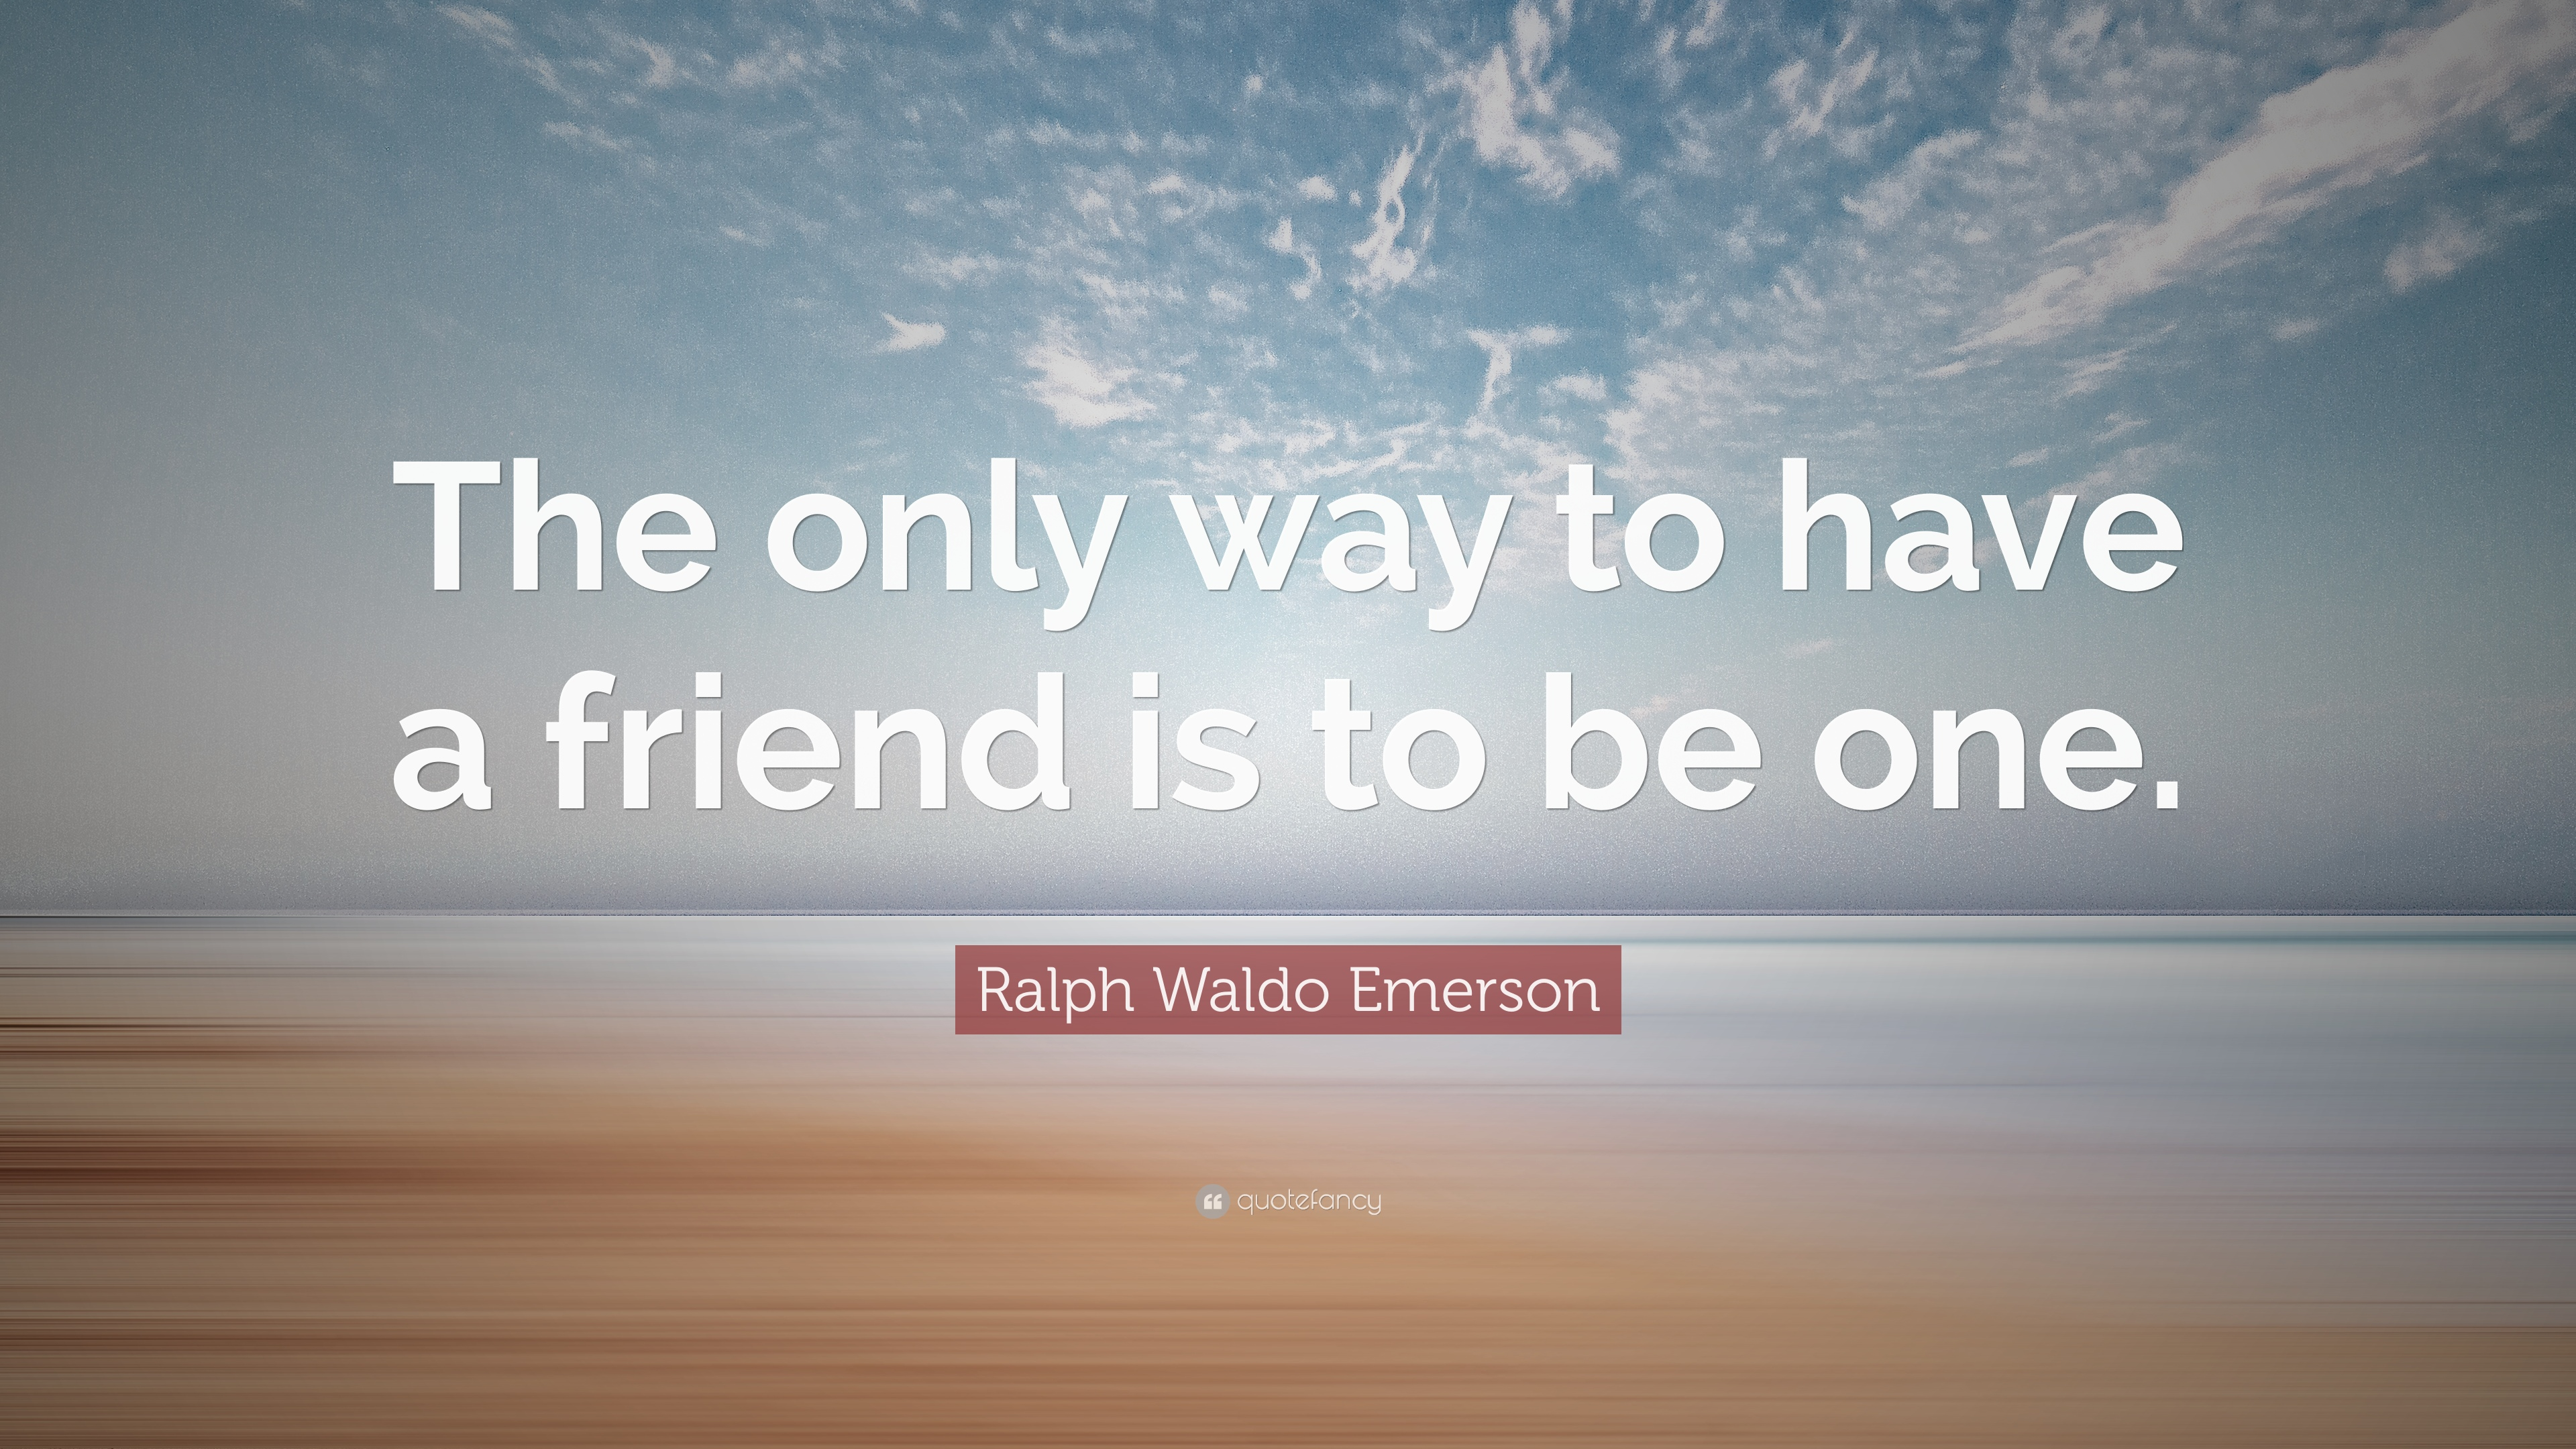 The Poetry Of Ralph Waldo Emerson: The only way to have a friend is to be one.